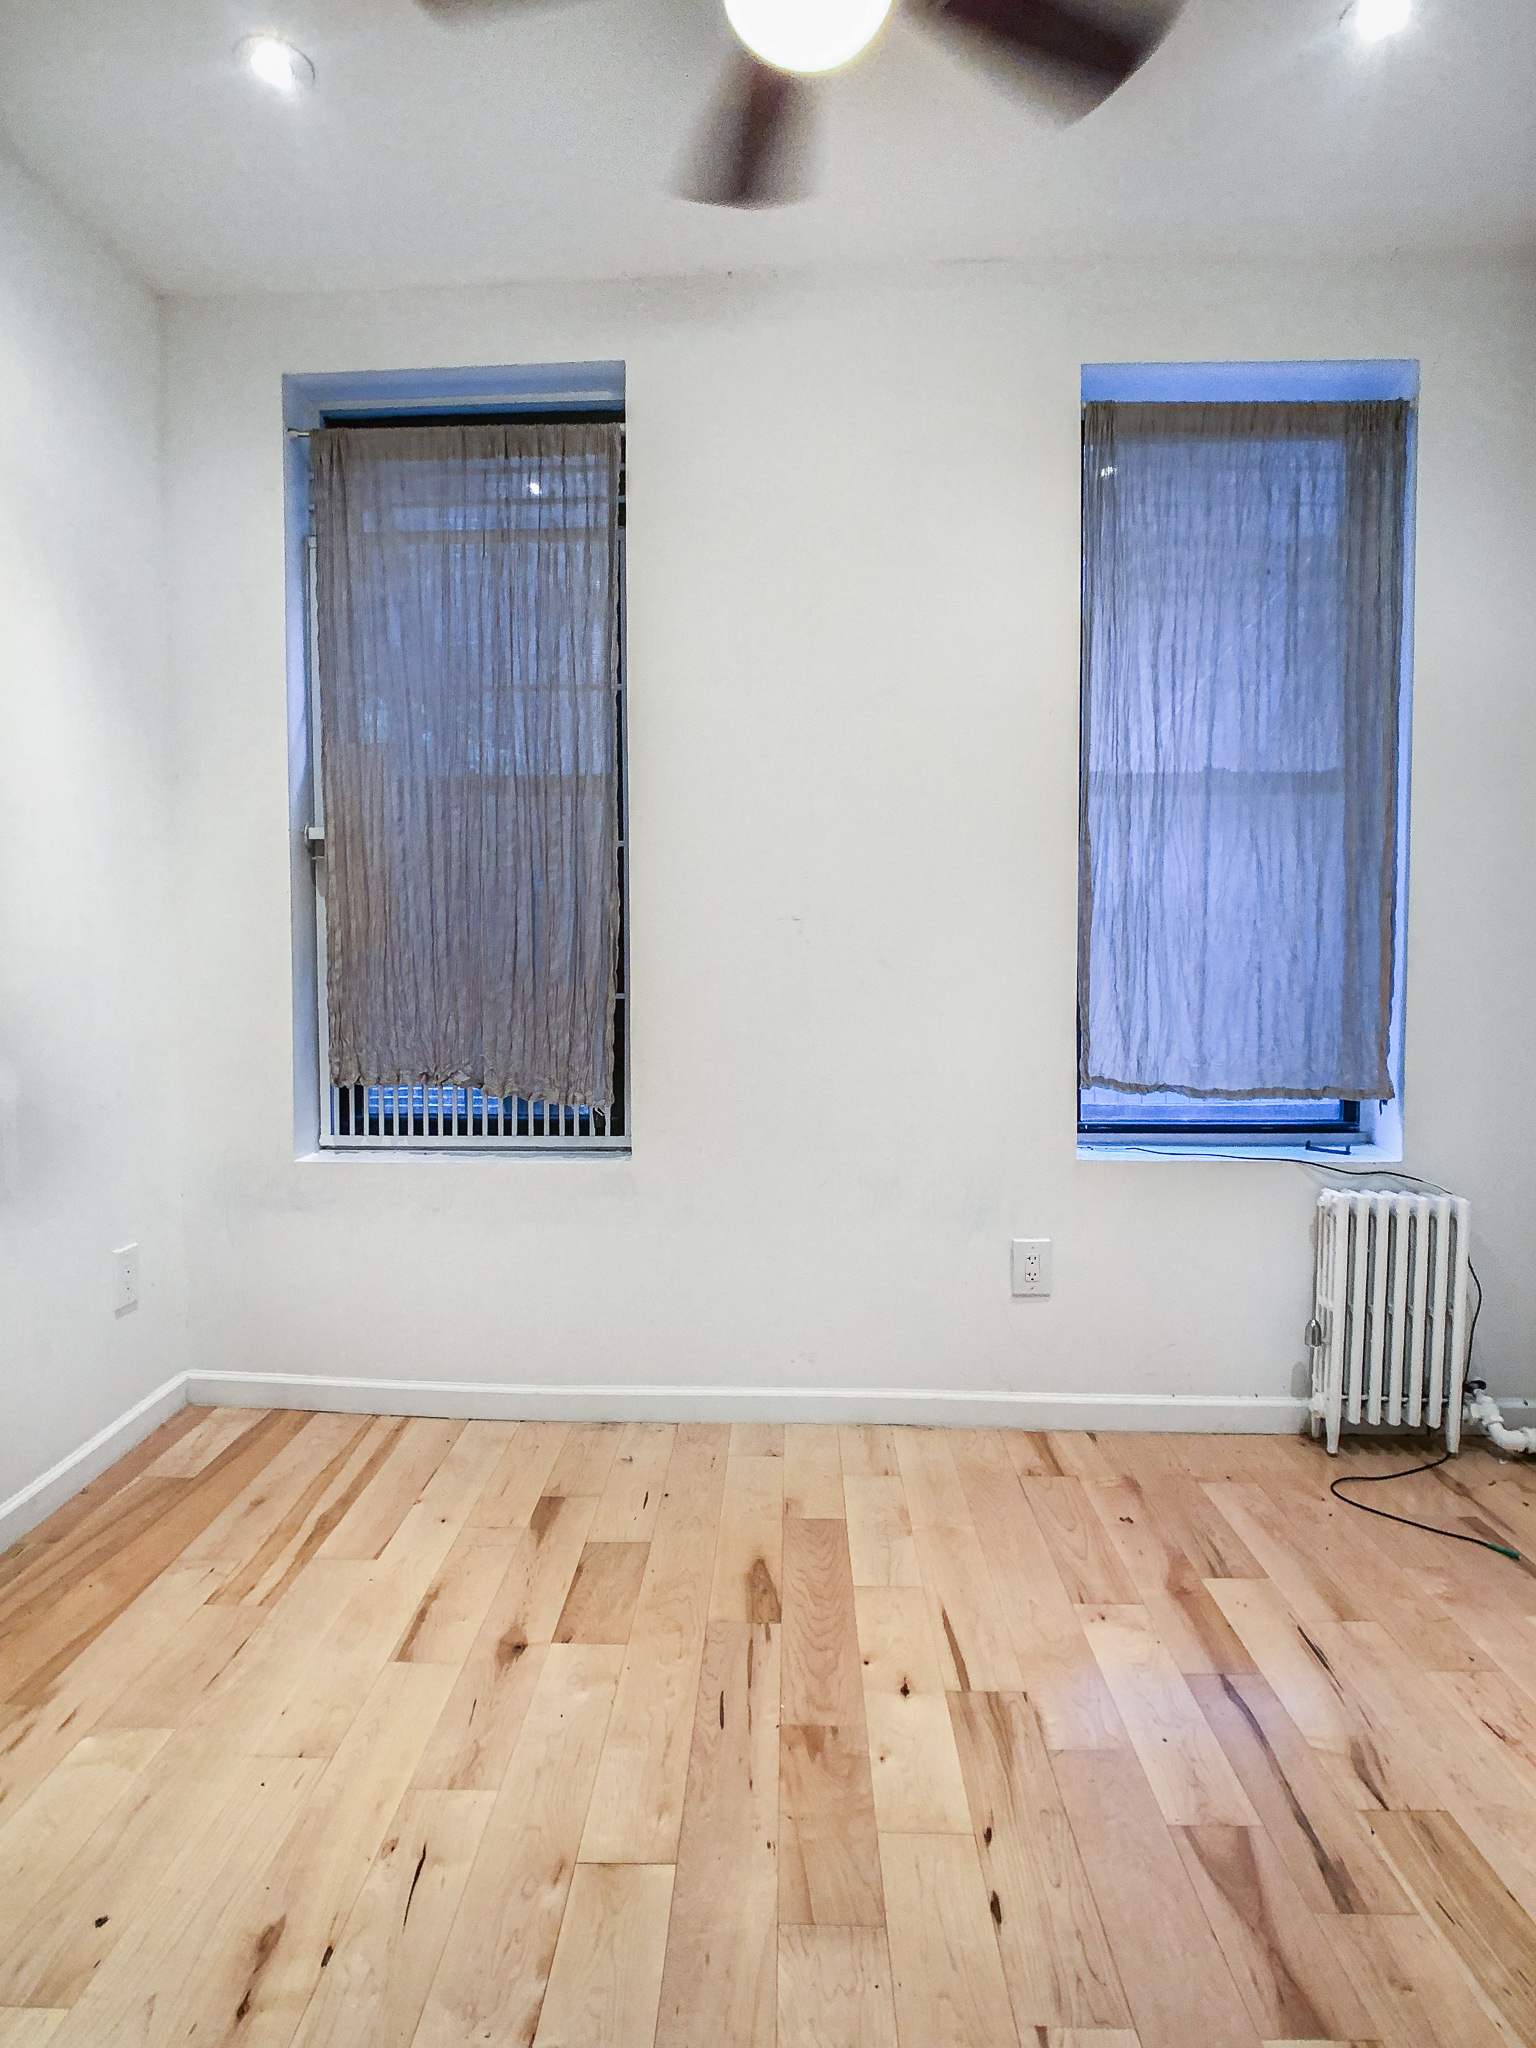 213 E 10th Street #7 - Renovated One Bedroom in Prime East Village! Enjoy one bedroom home with top of a line renovations. The unit features queen size bedroom, charming living space with sofa with open renovated kitchen (including washer and dishwasher). Images are of the exact unit. Located just one flight up the stairs in prime east village. Close to public transportation, cafes and shopping.Rent: $2,795 /monthTerms: 12 - 12 MonthsAvailable: Immediate